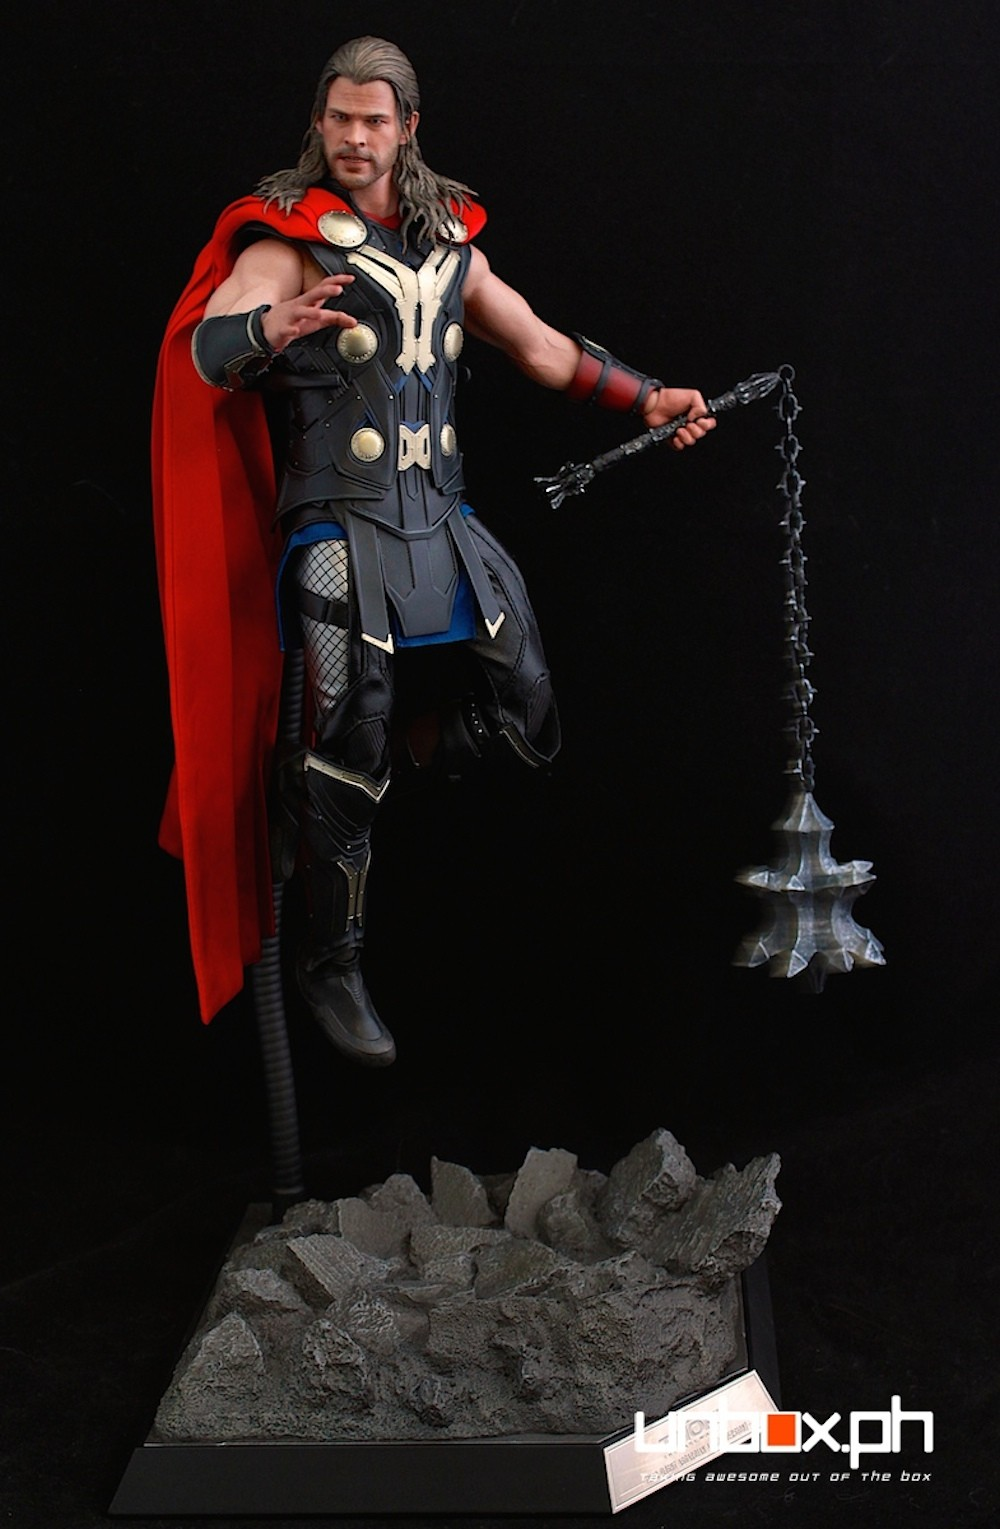 Thor lost his hammer so I guess this will have to do... lol!